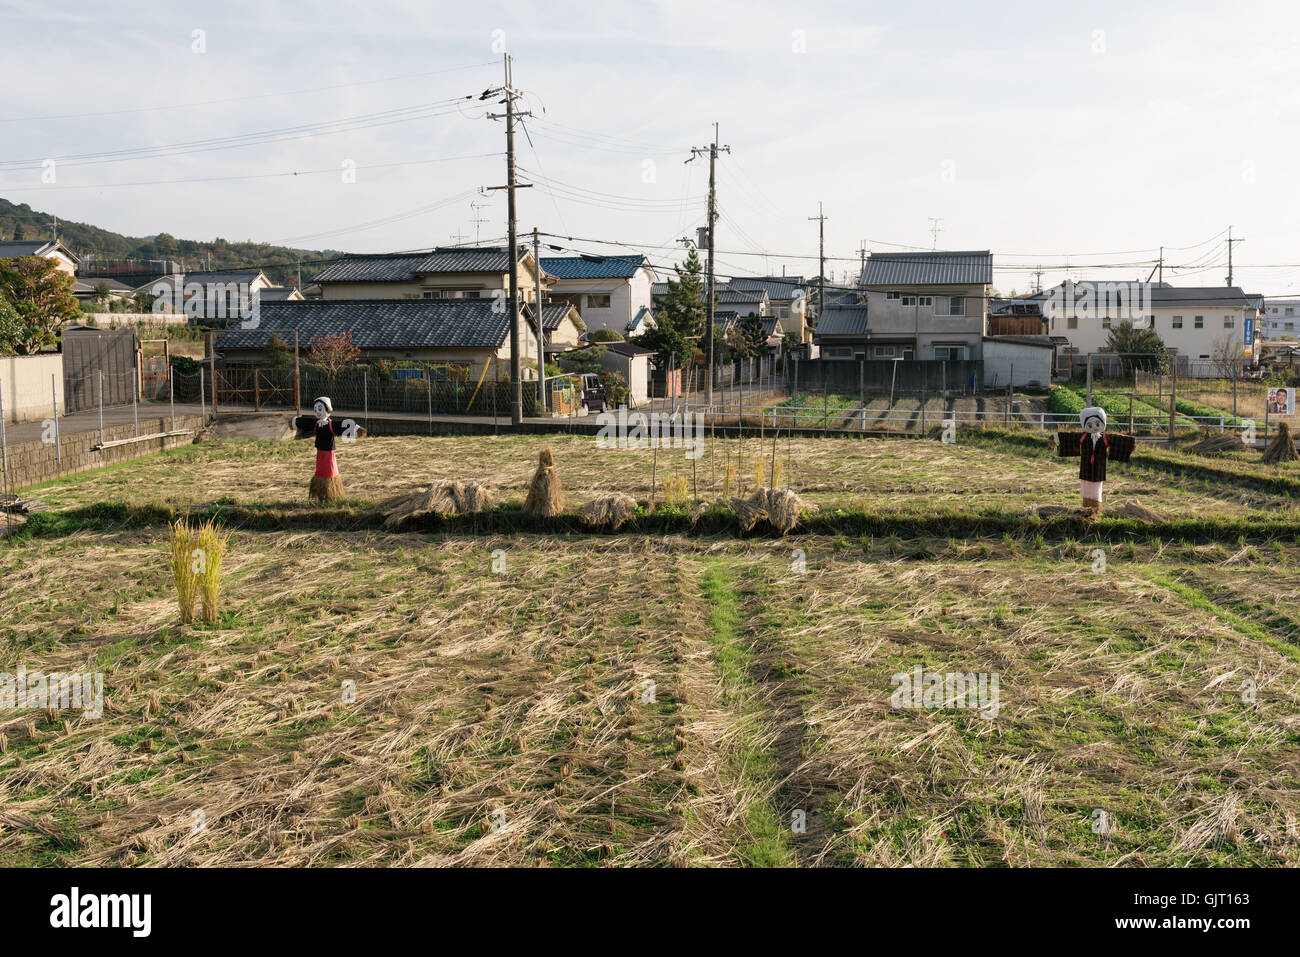 Nara, Japan - November 21 2016: Rice field with scare-crows after harvest at the outskirt of Nara City in Japan. - Stock Image